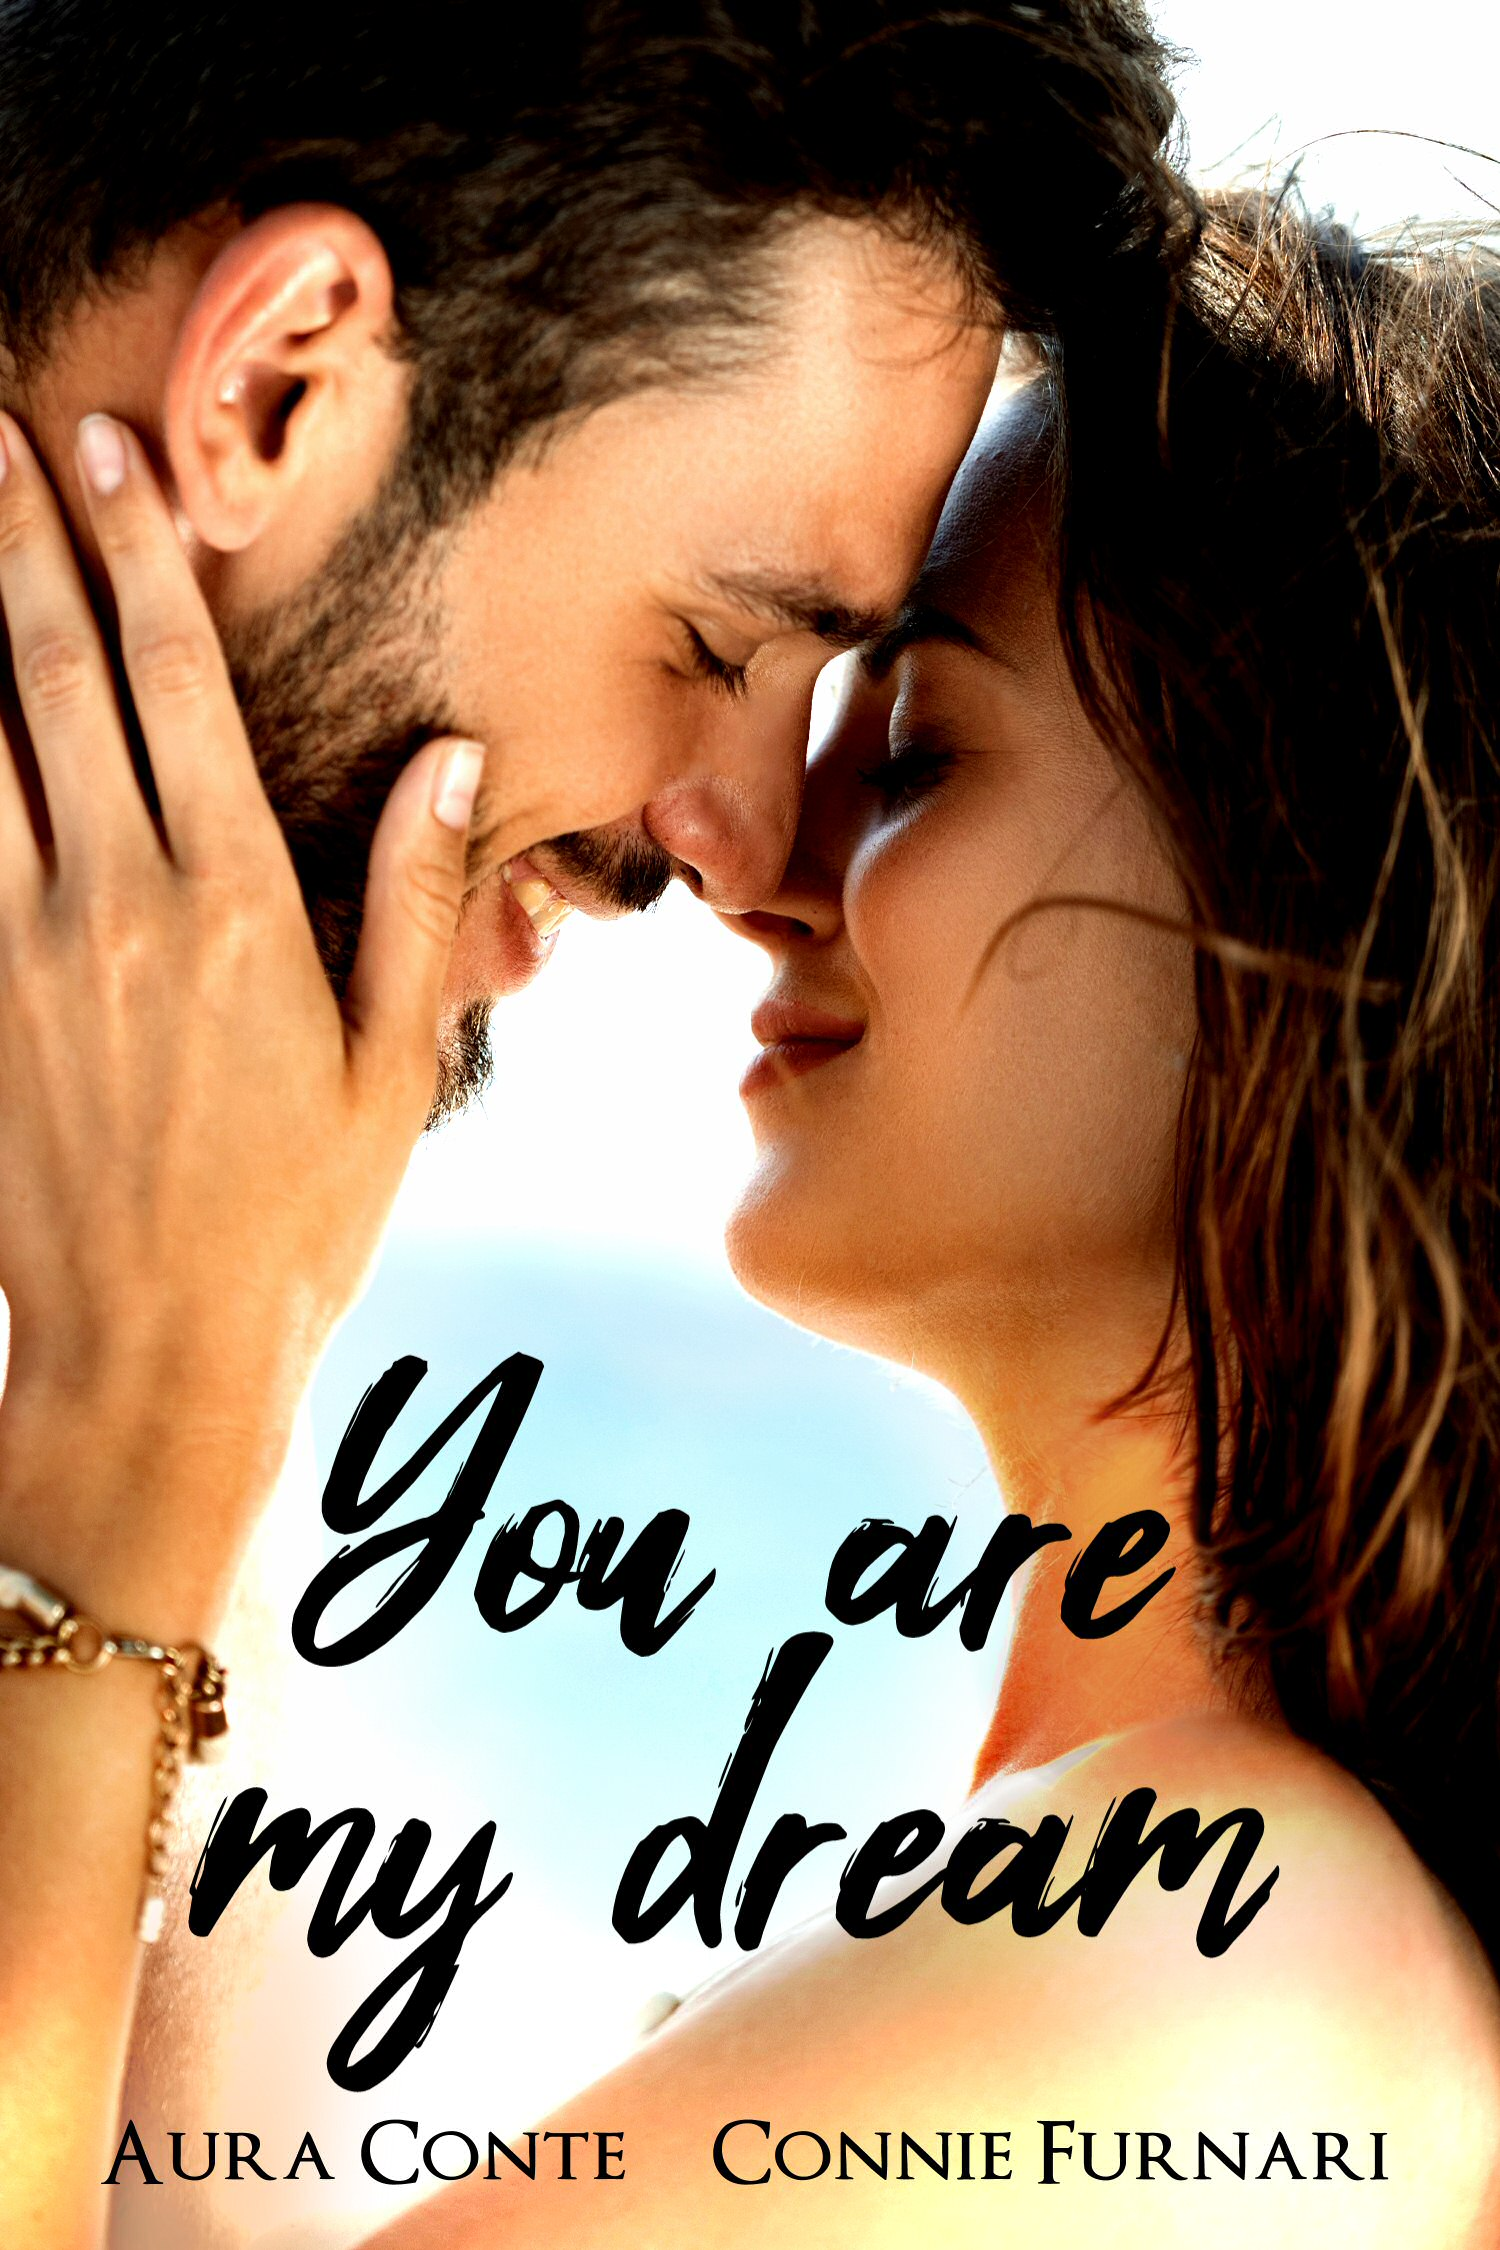 You are my dream - Aura Conte Connie Furnari JPG